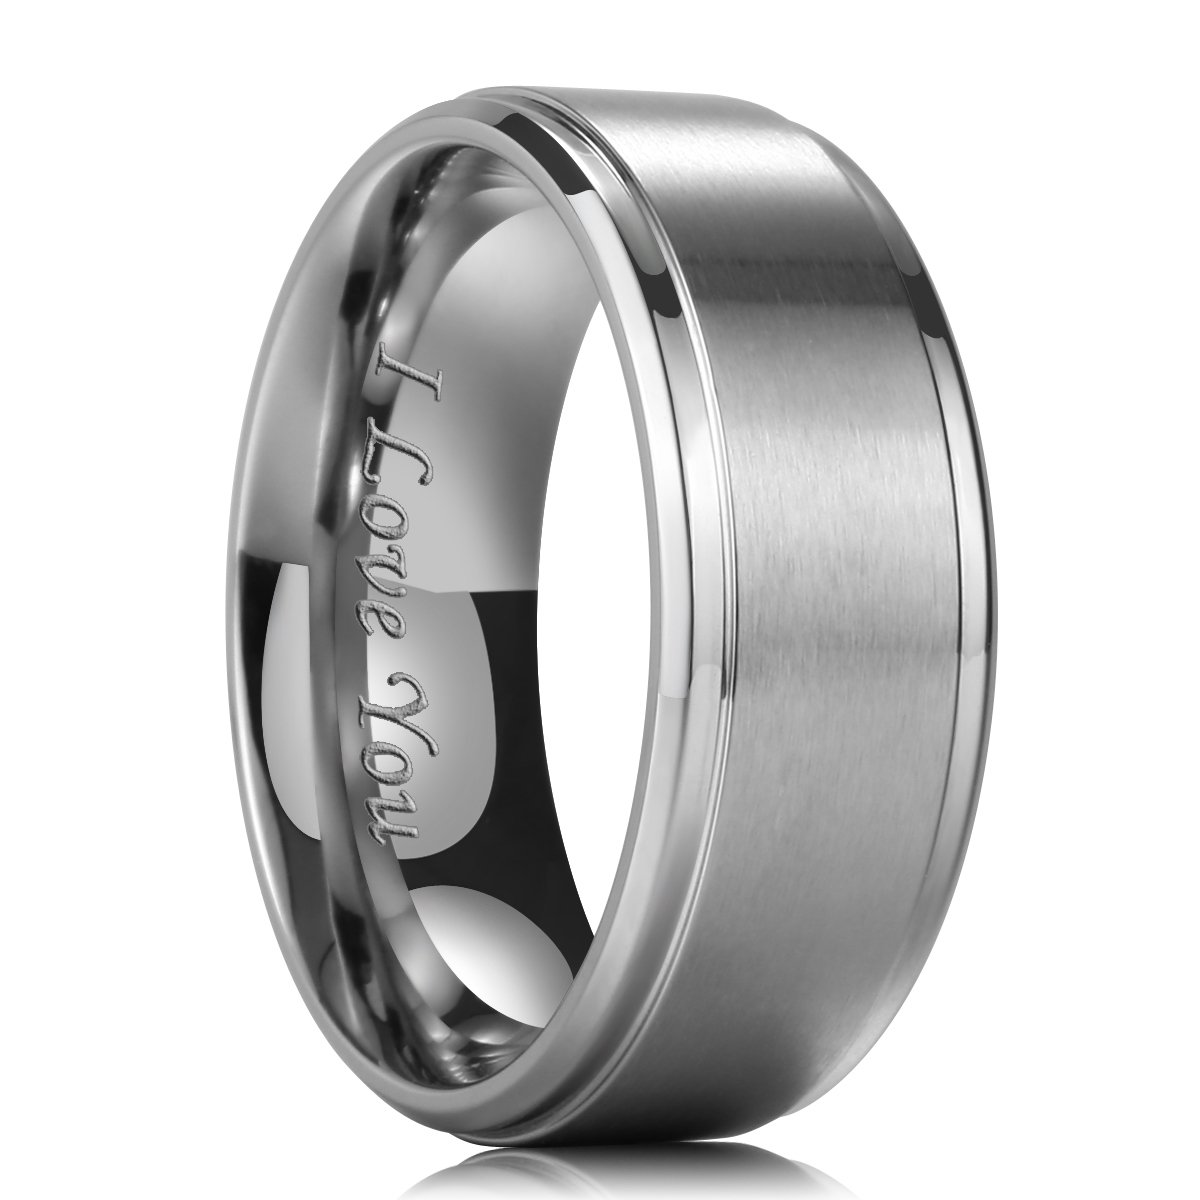 King Will BASIC 9mm Titanium Wedding Ring Matte Finished Wedding Band I Love You Laser 11 by King Will (Image #1)